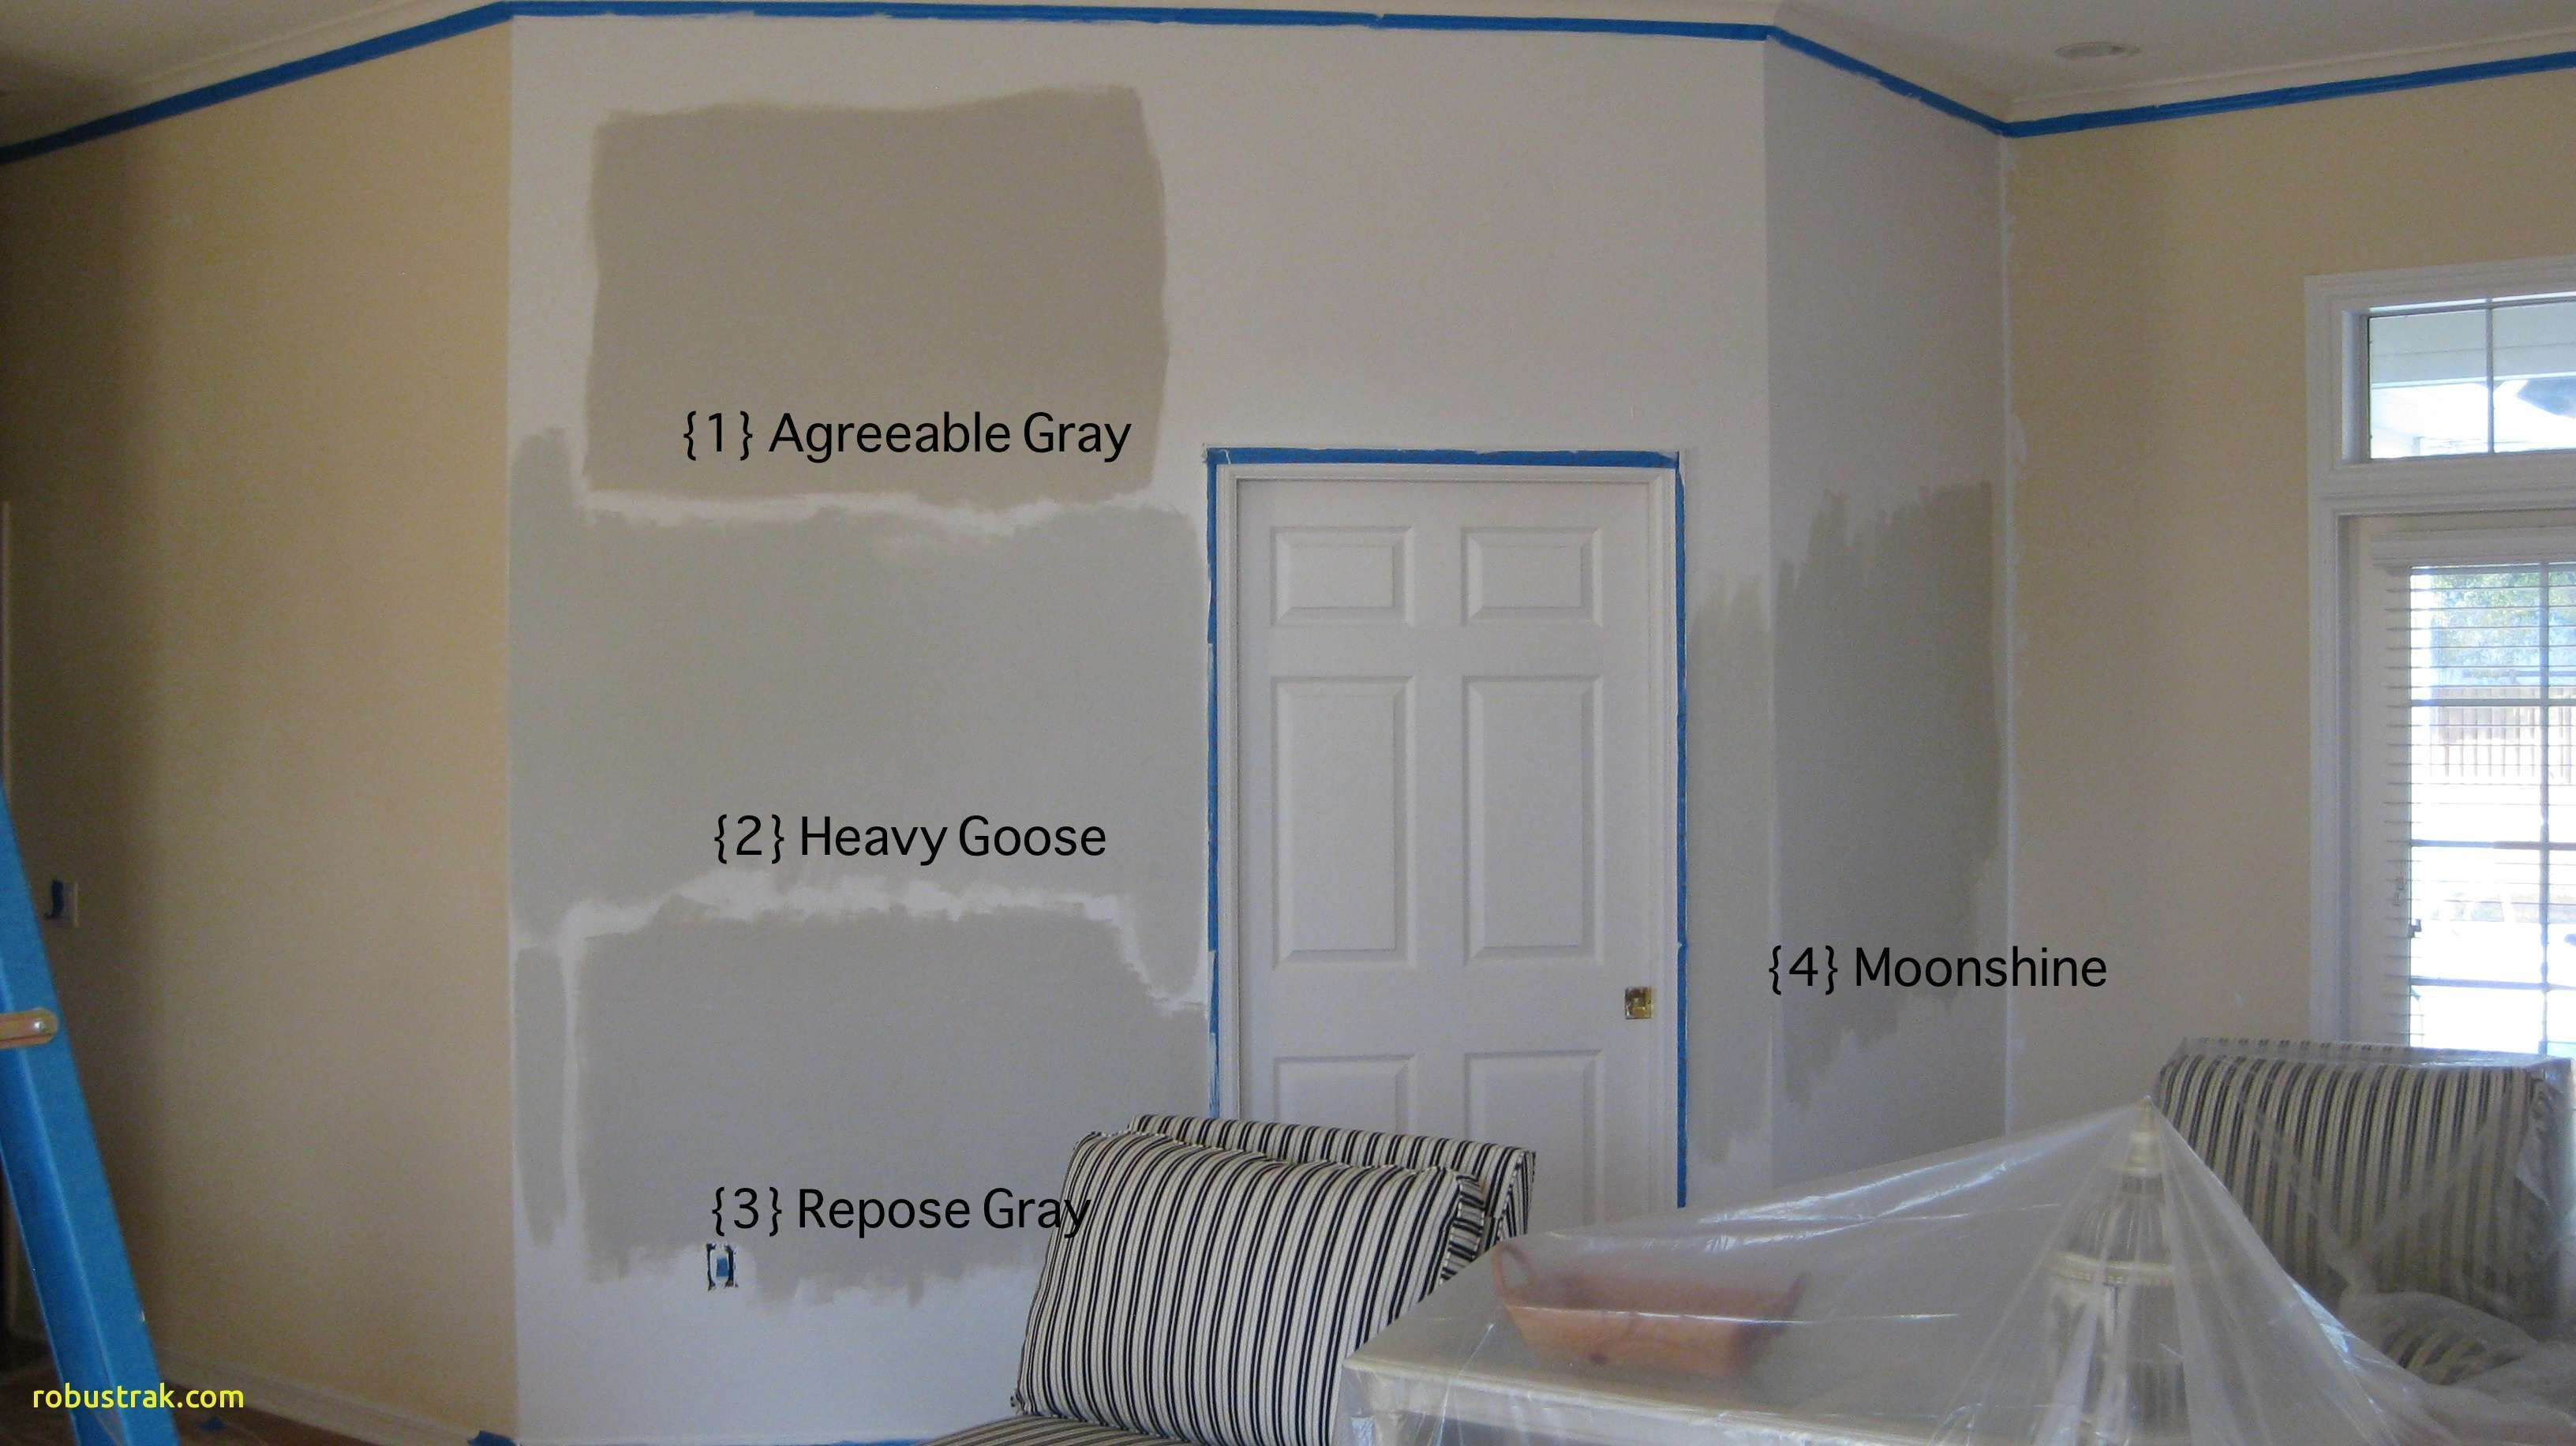 17 Awesome Living Room Paintings Chips Ideas Agreeable Gray Agreeable Gray Sherwin Williams Repose Gray